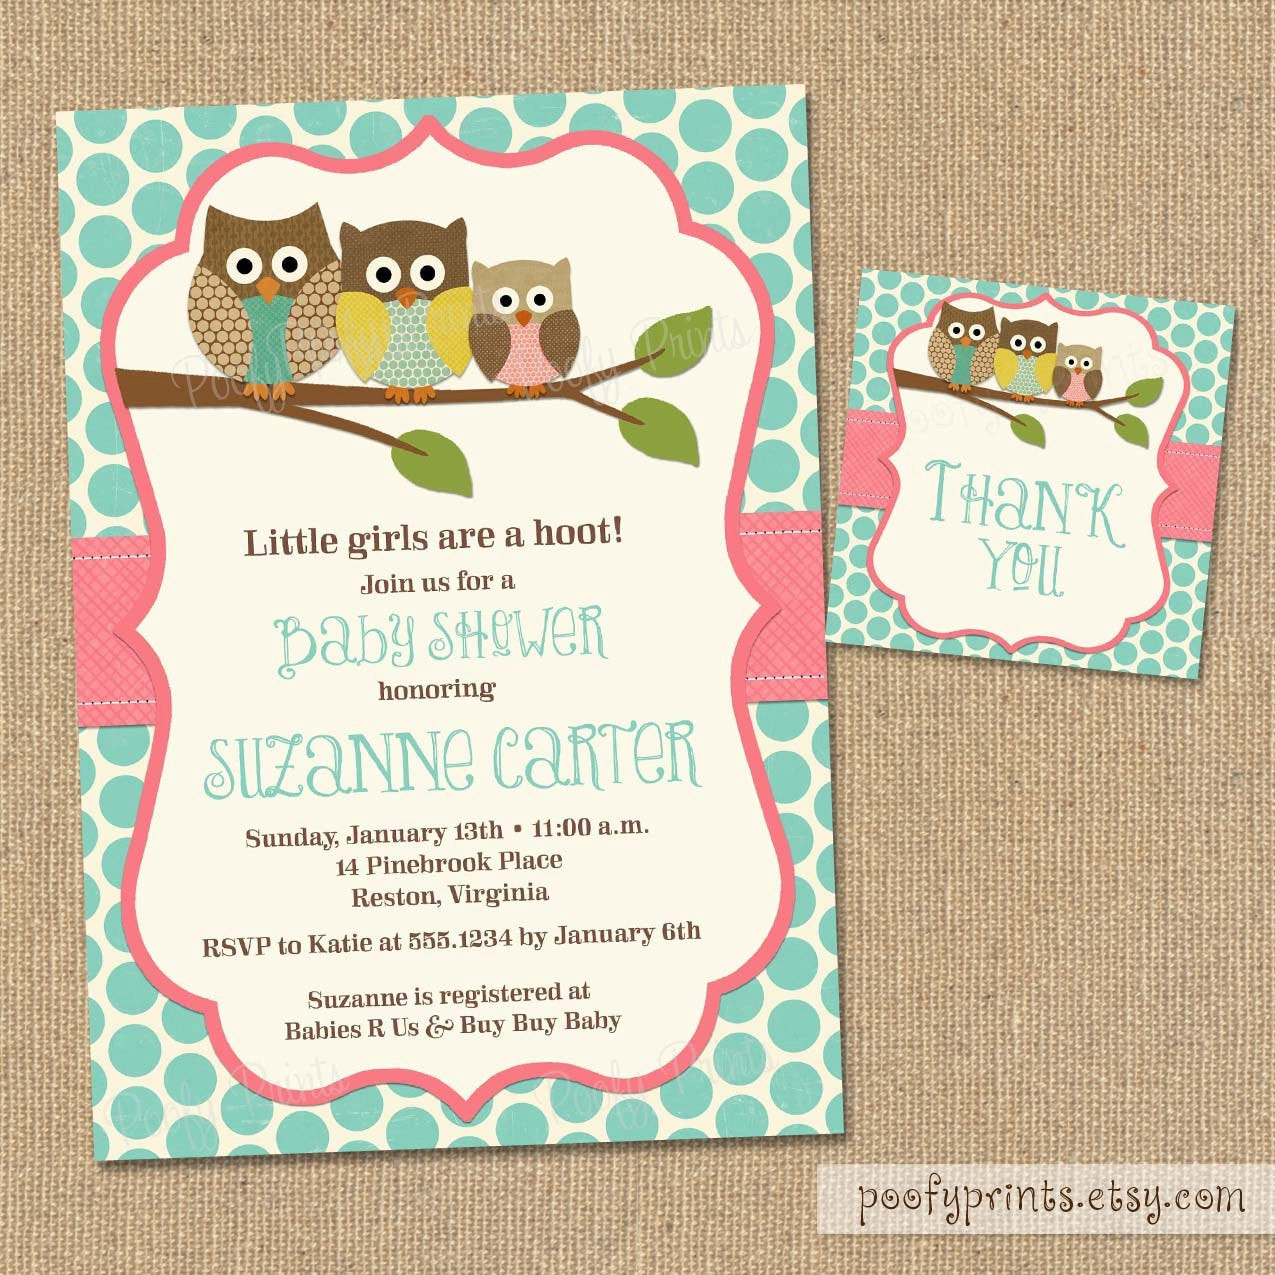 Best ideas about DIY Baby Shower Invites . Save or Pin Owl Baby Shower Invitations DIY Printable Baby Girl Shower Now.